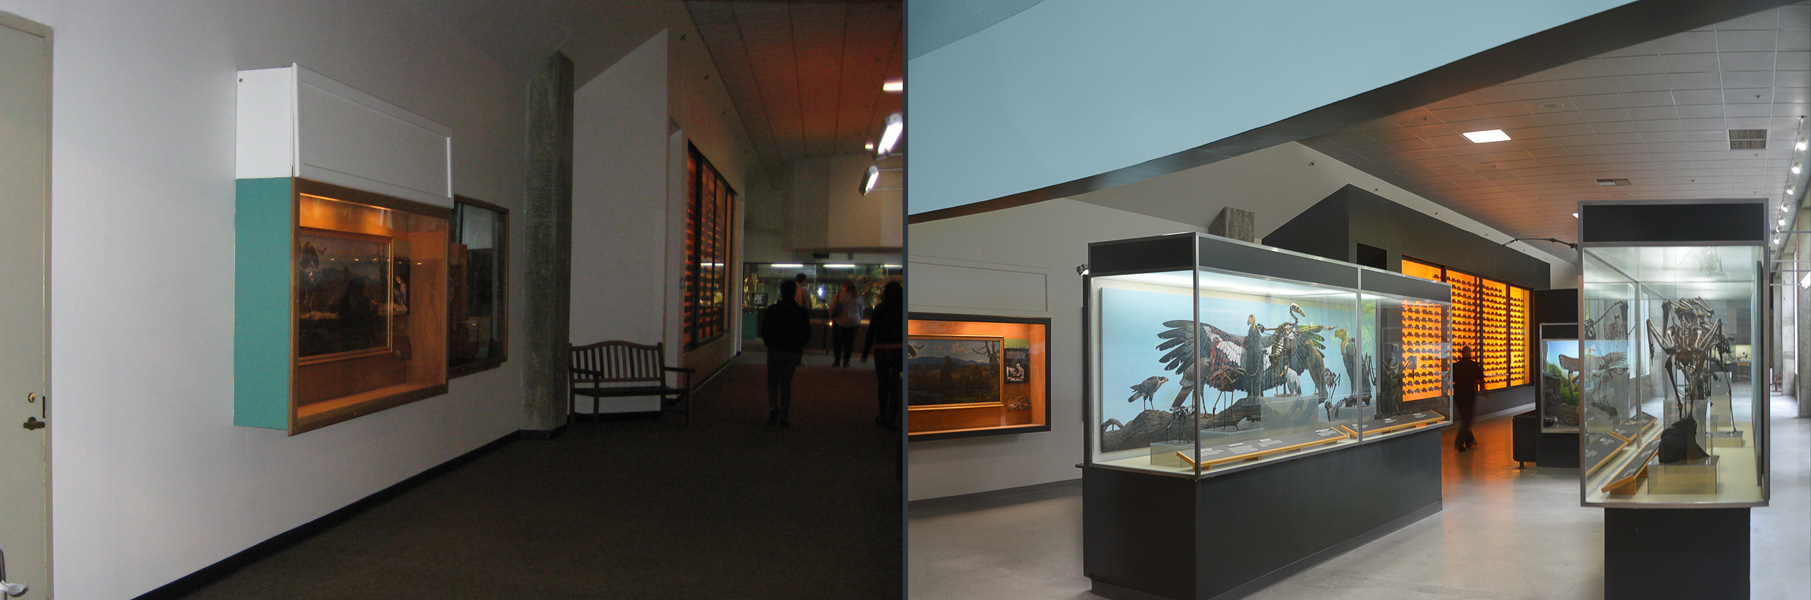 North Gallery — Before | after renovation